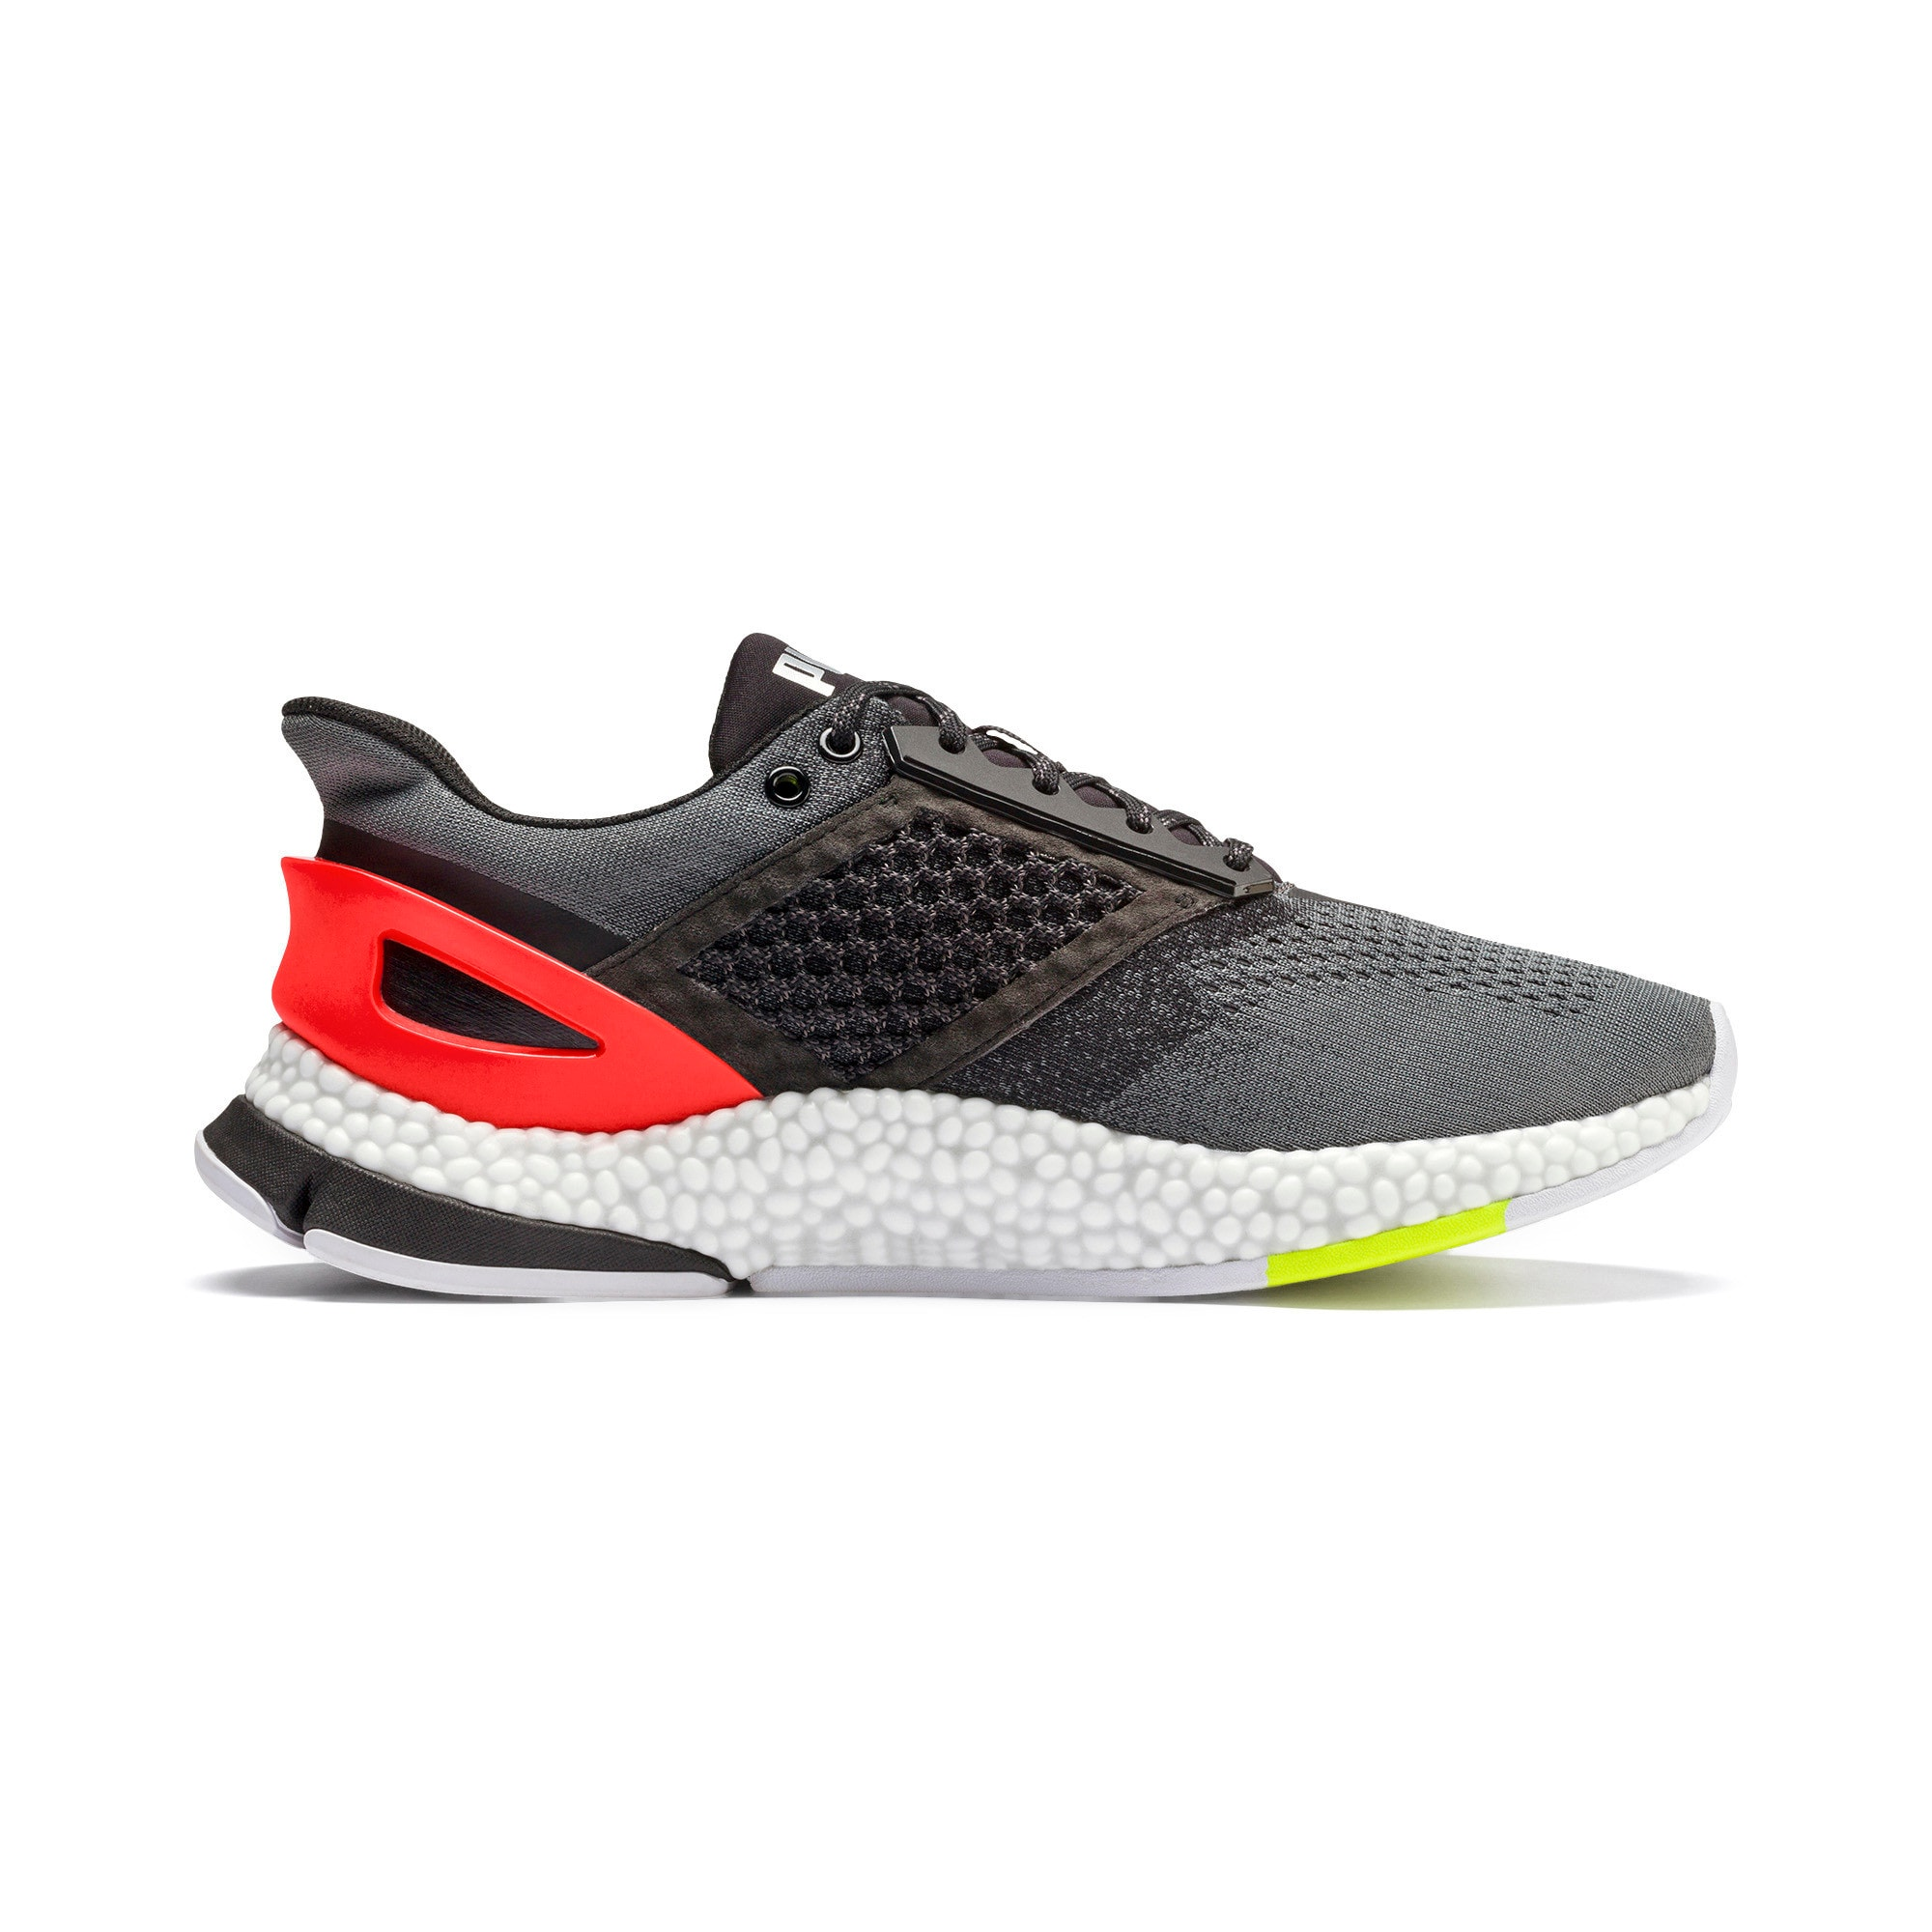 Thumbnail 7 of HYBRID NETFIT Astro Men's Running Shoes, CASTLEROCK-Puma Blck-Ngy Red, medium